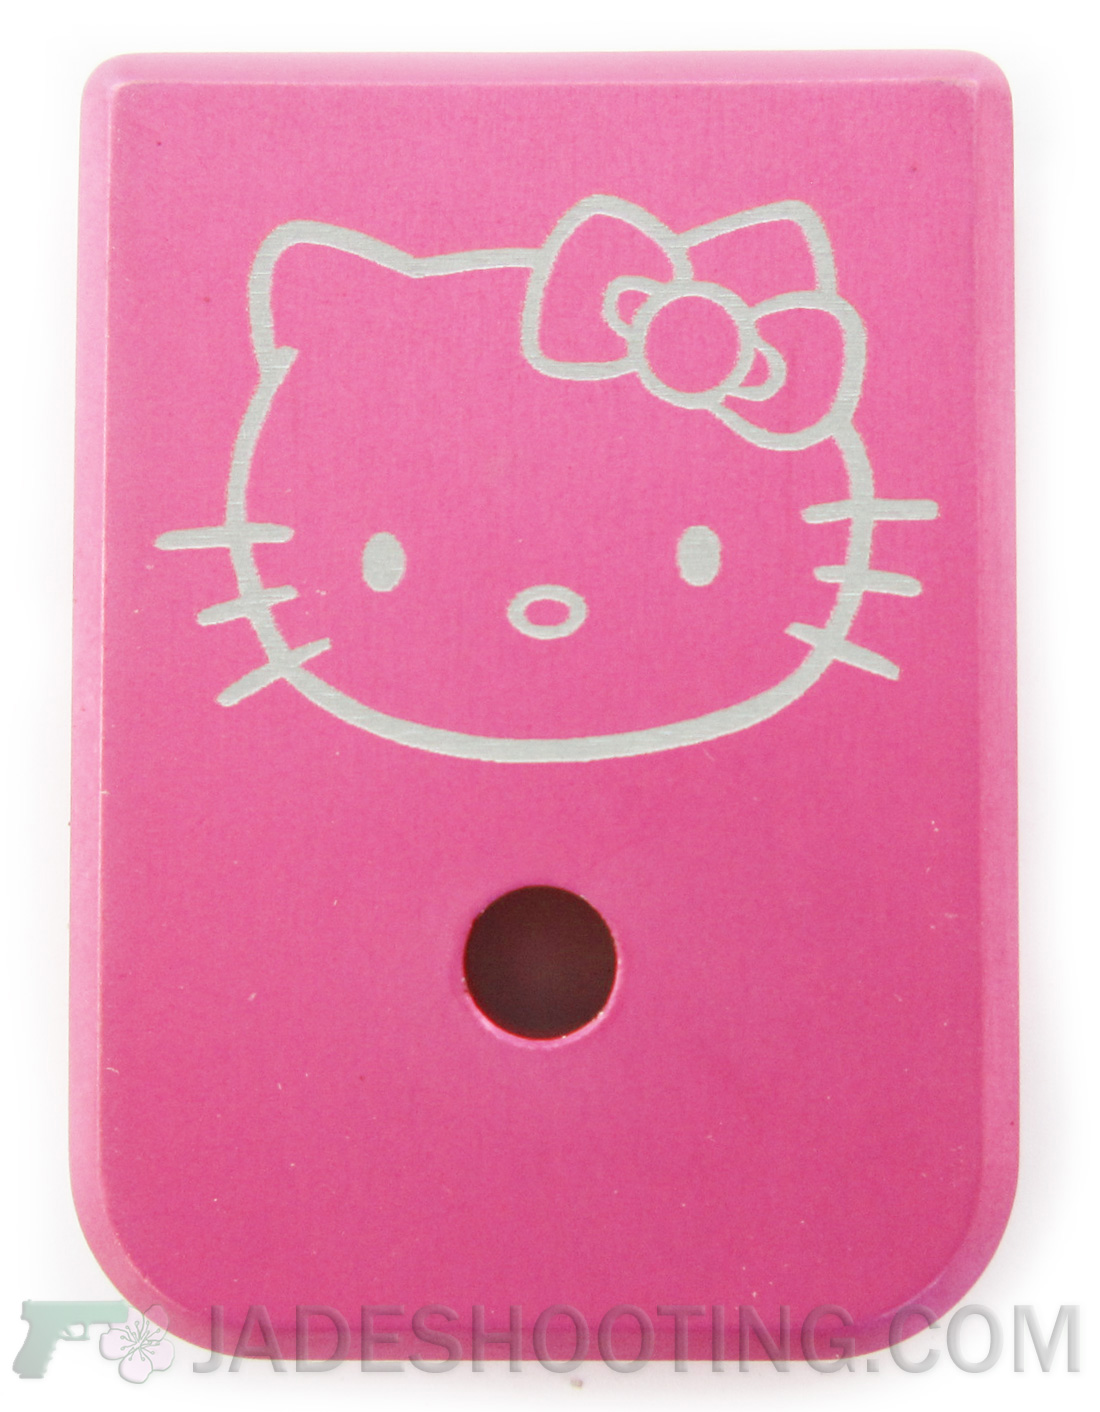 new pink hello kitty engraved graphic magazine floor plate